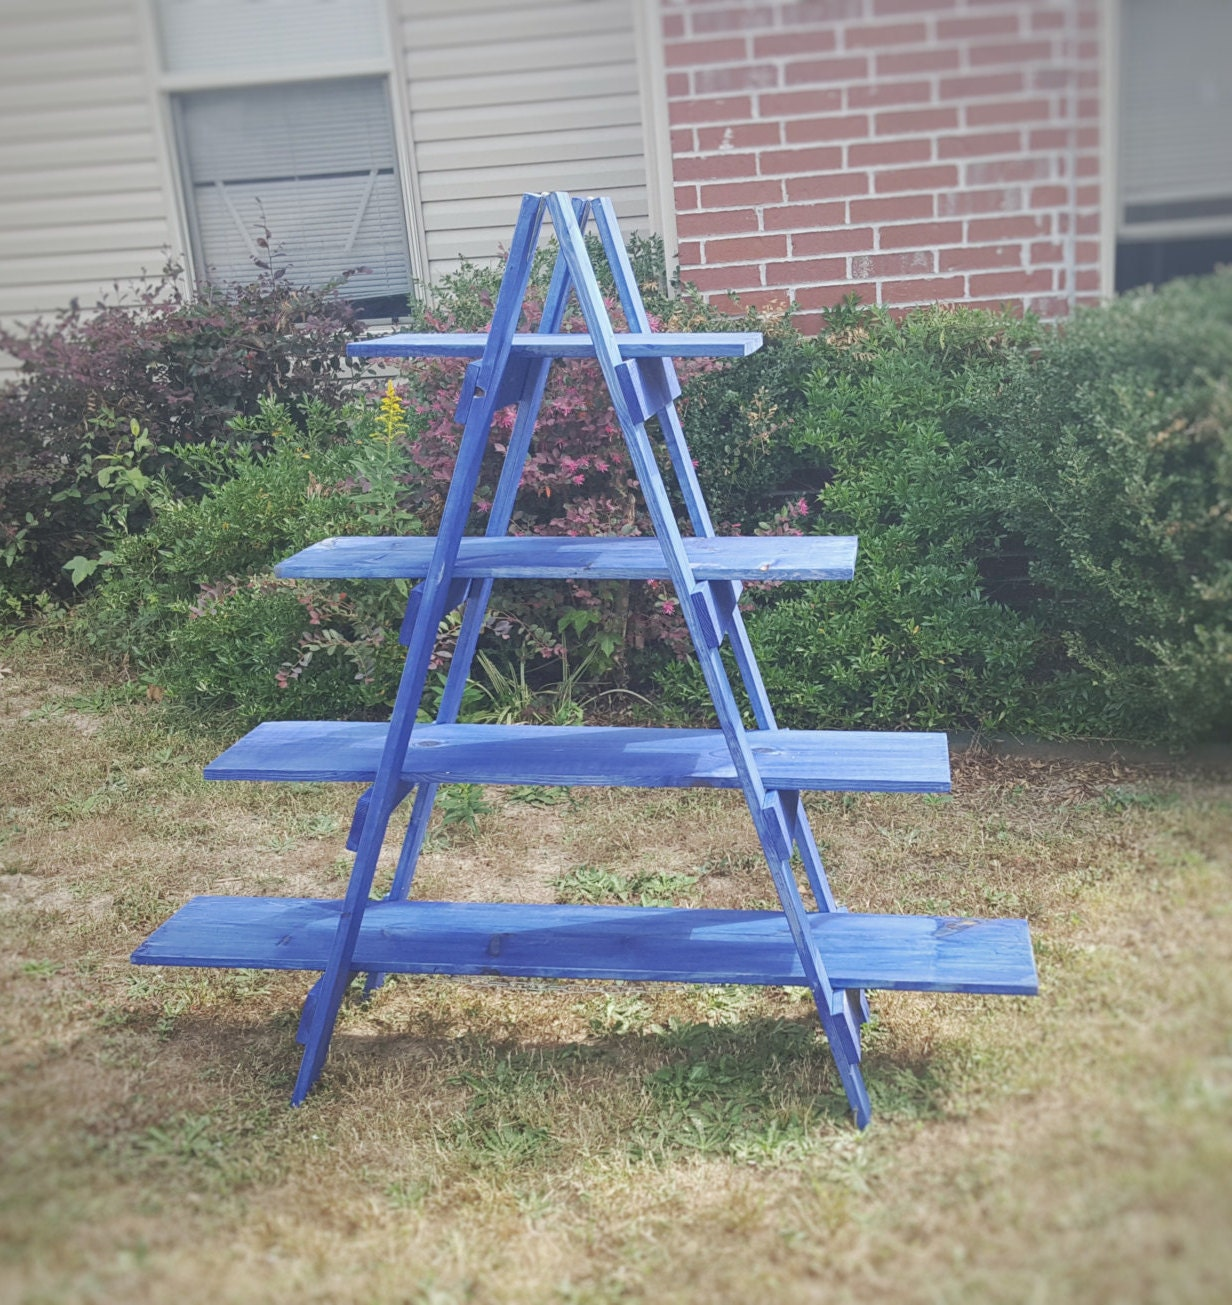 5 Foot Wooden Ladder Christmas Village Display Ladder